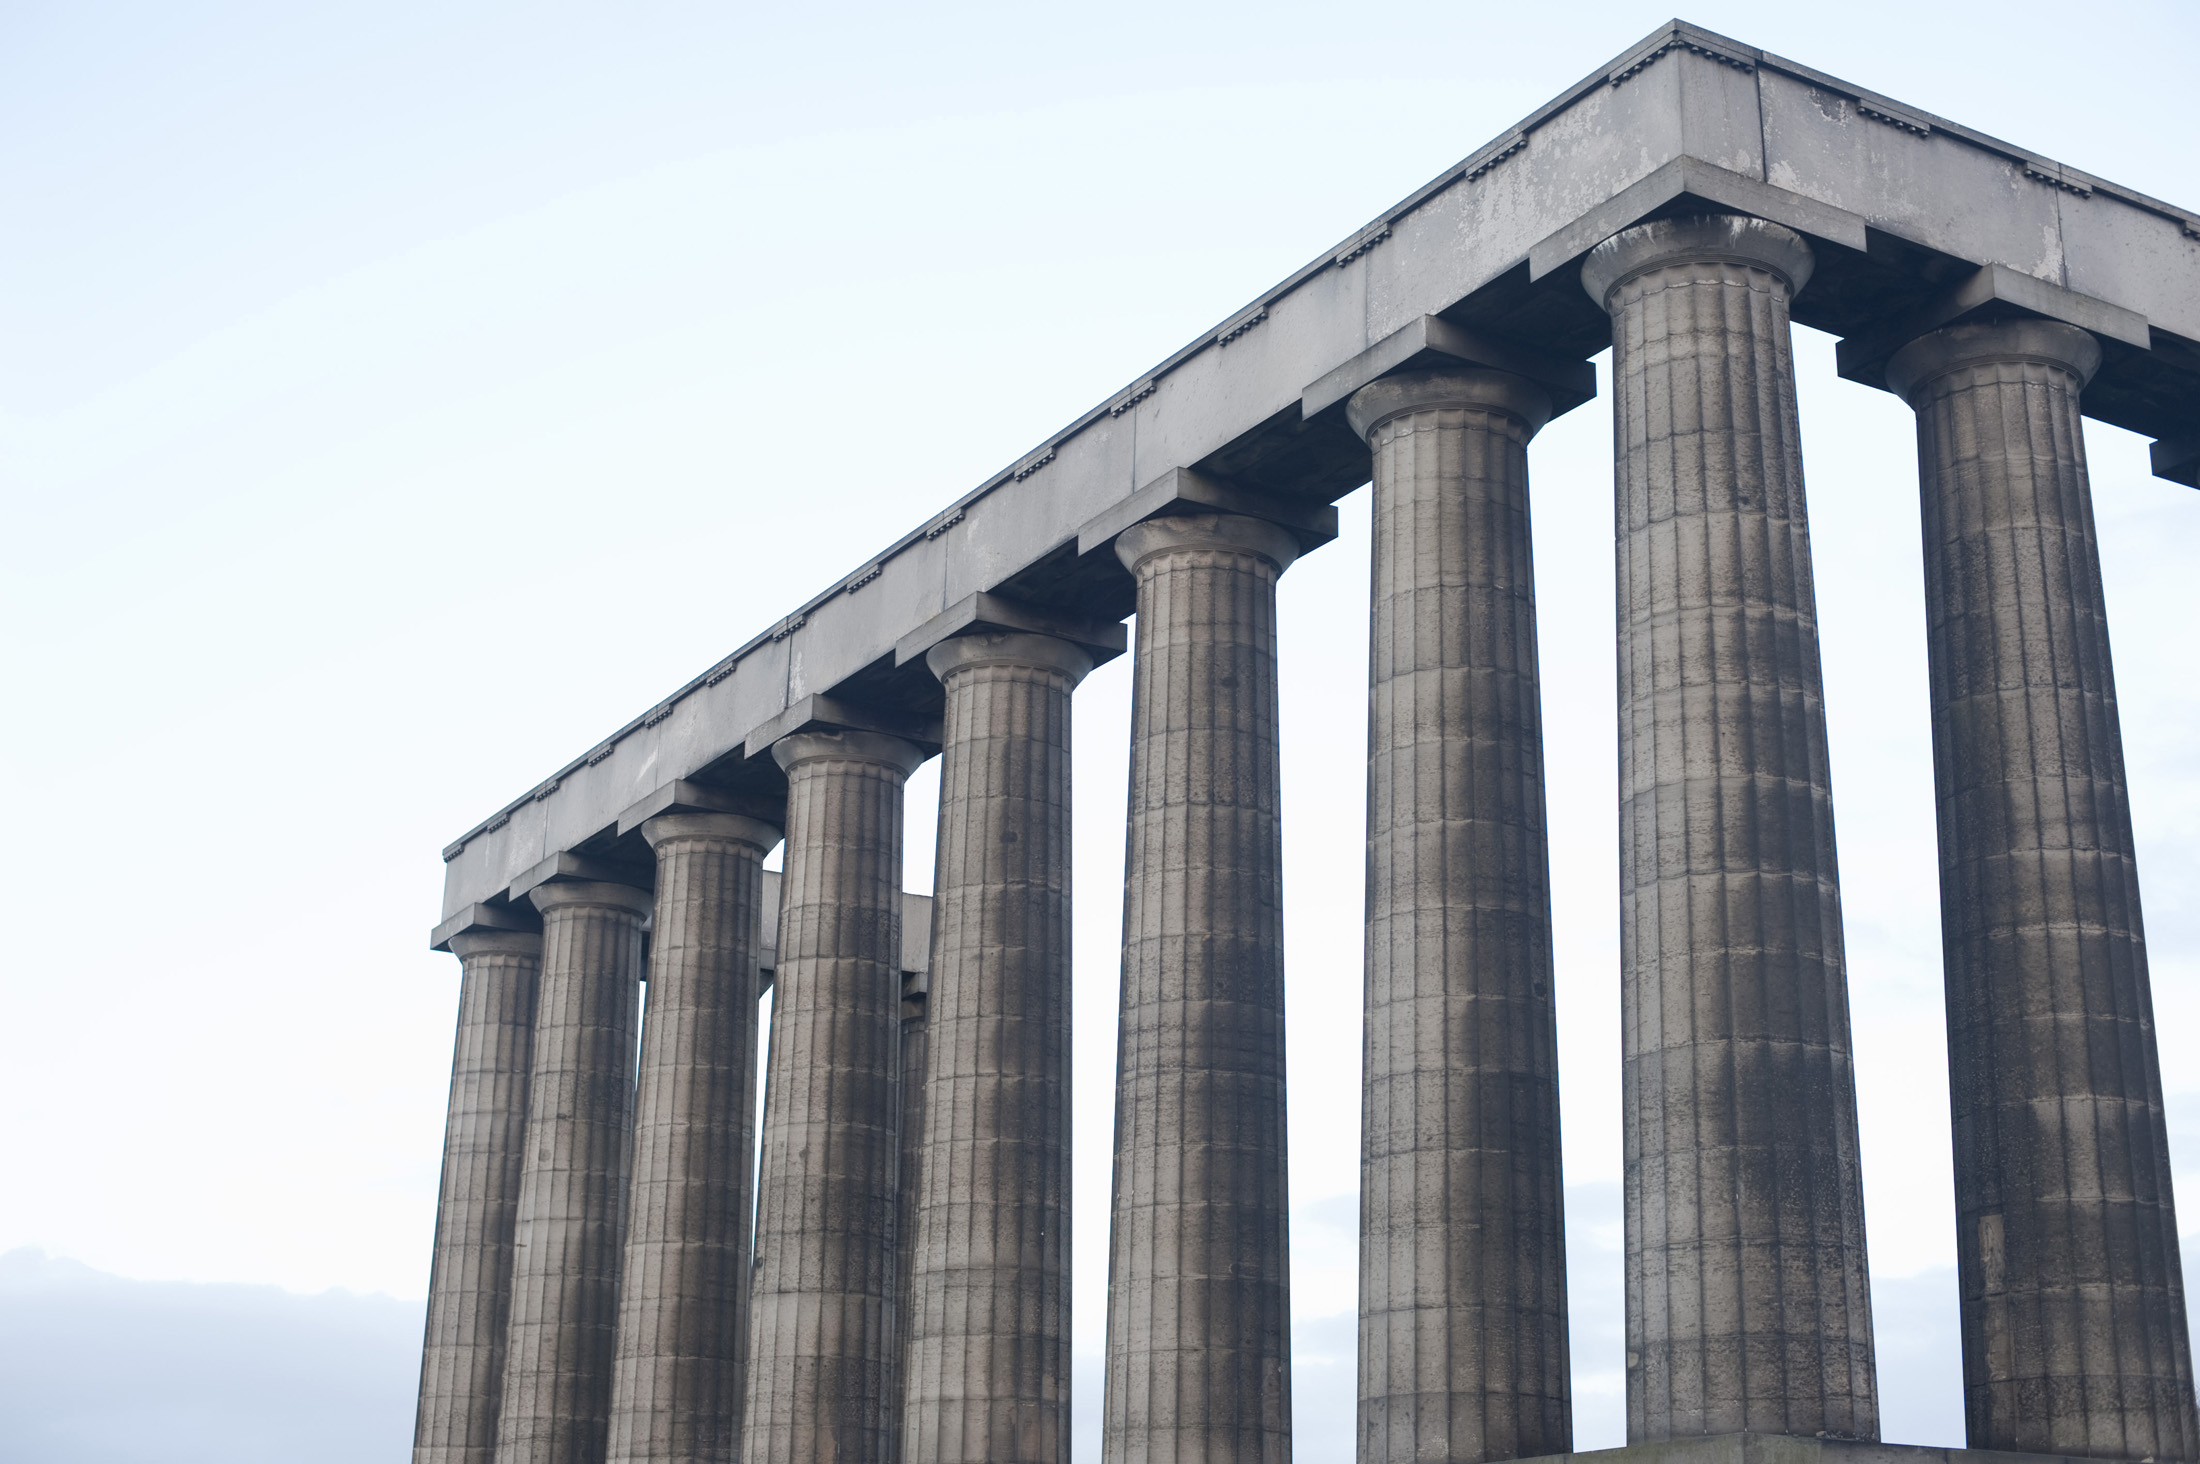 Unfinished National Monument, Calton Hill, Edinburgh, Scotland